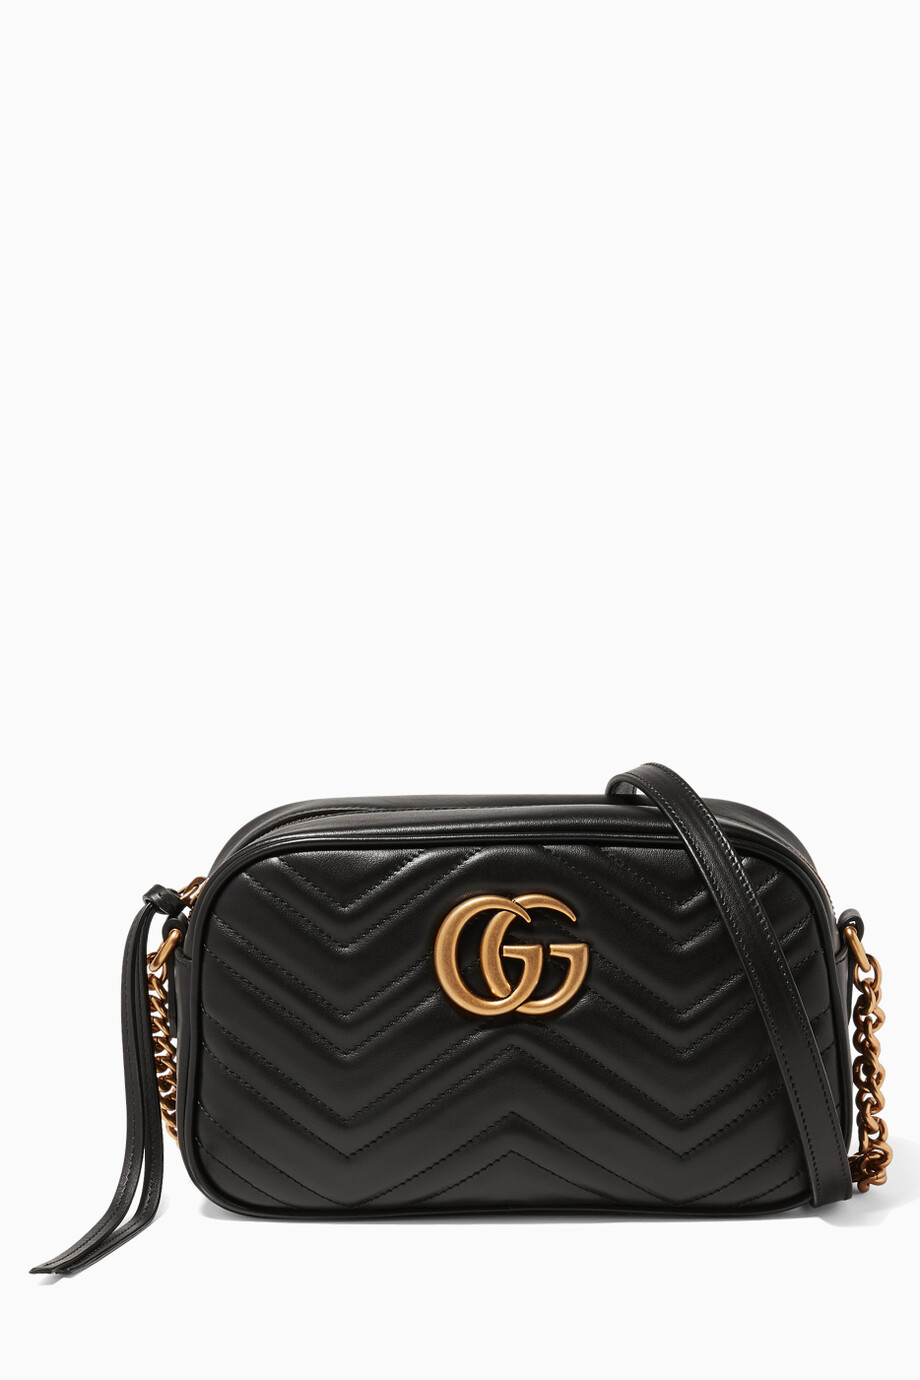 c87118c39d62 Shop Gucci Black Black Mini GG Marmont Matelassé Camera Bag for ...